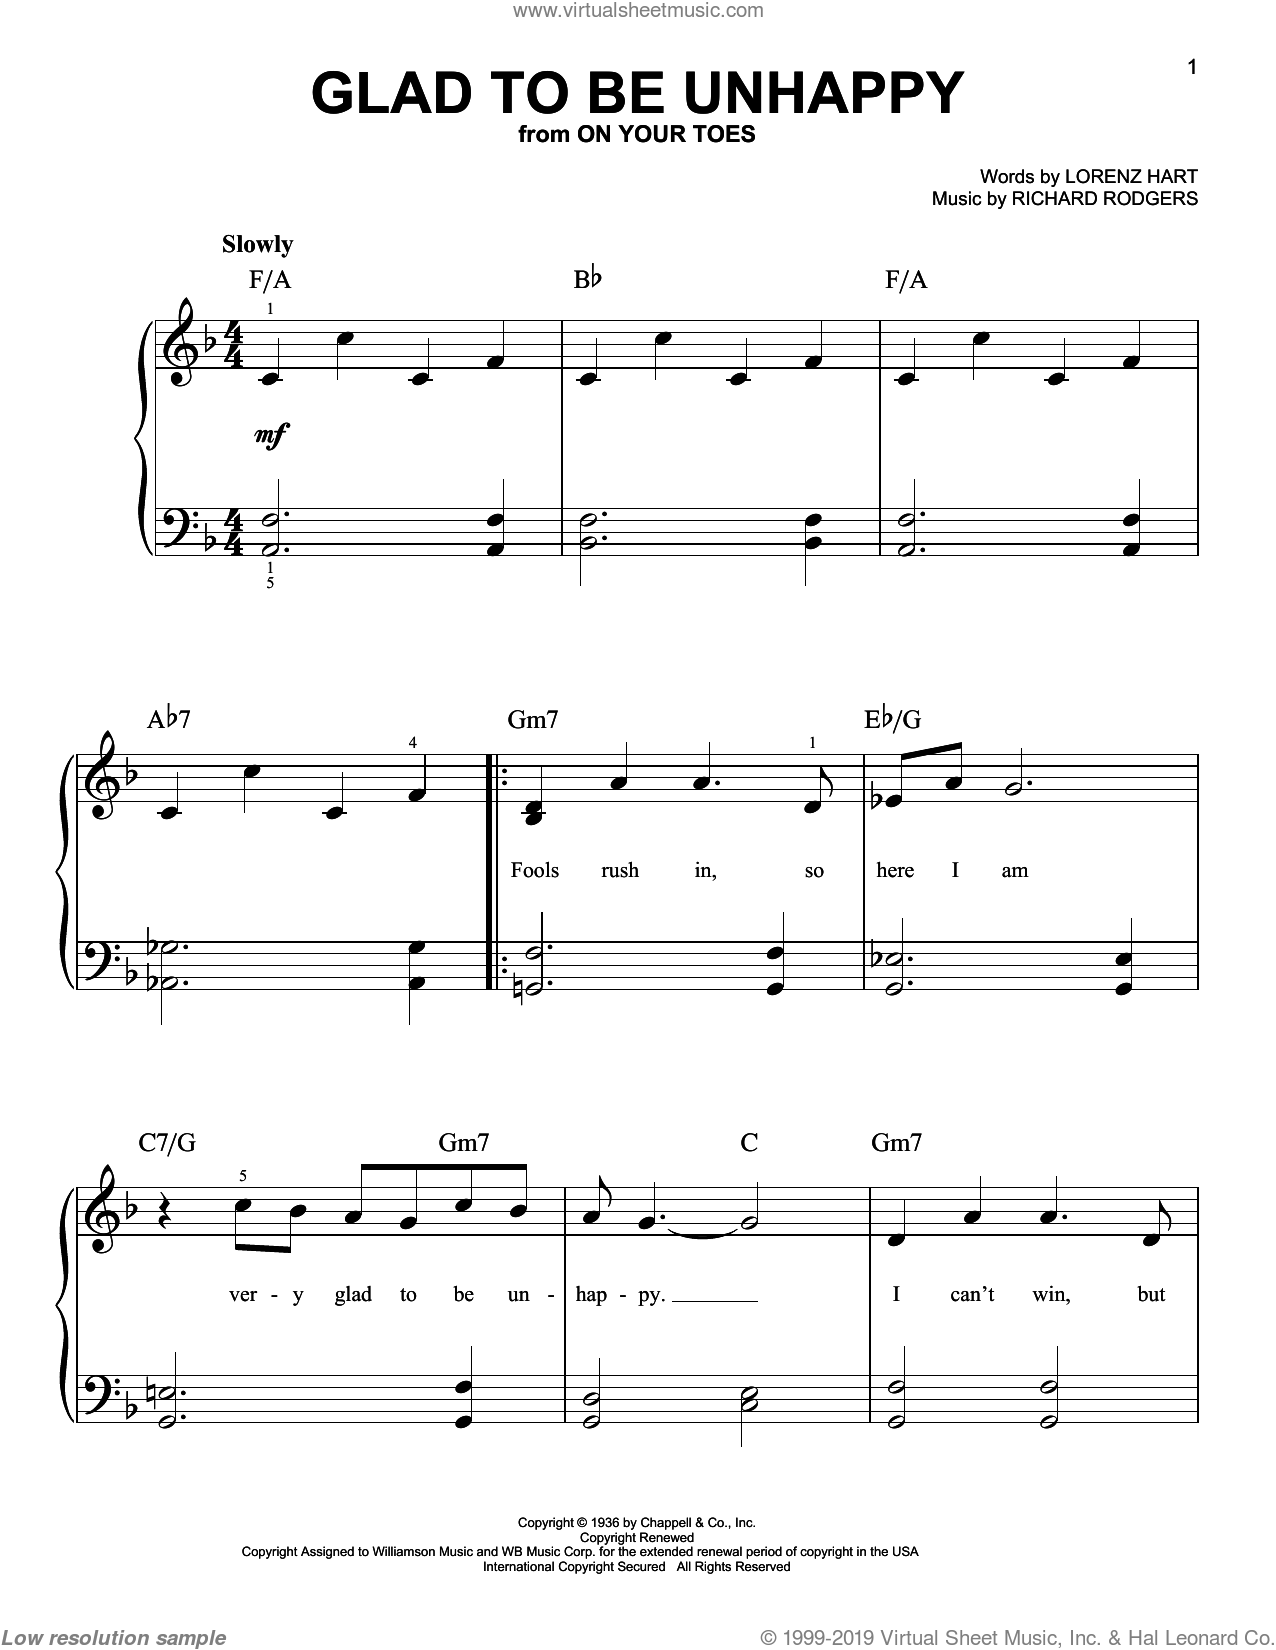 Glad To Be Unhappy sheet music for piano solo (chords) by Richard Rodgers